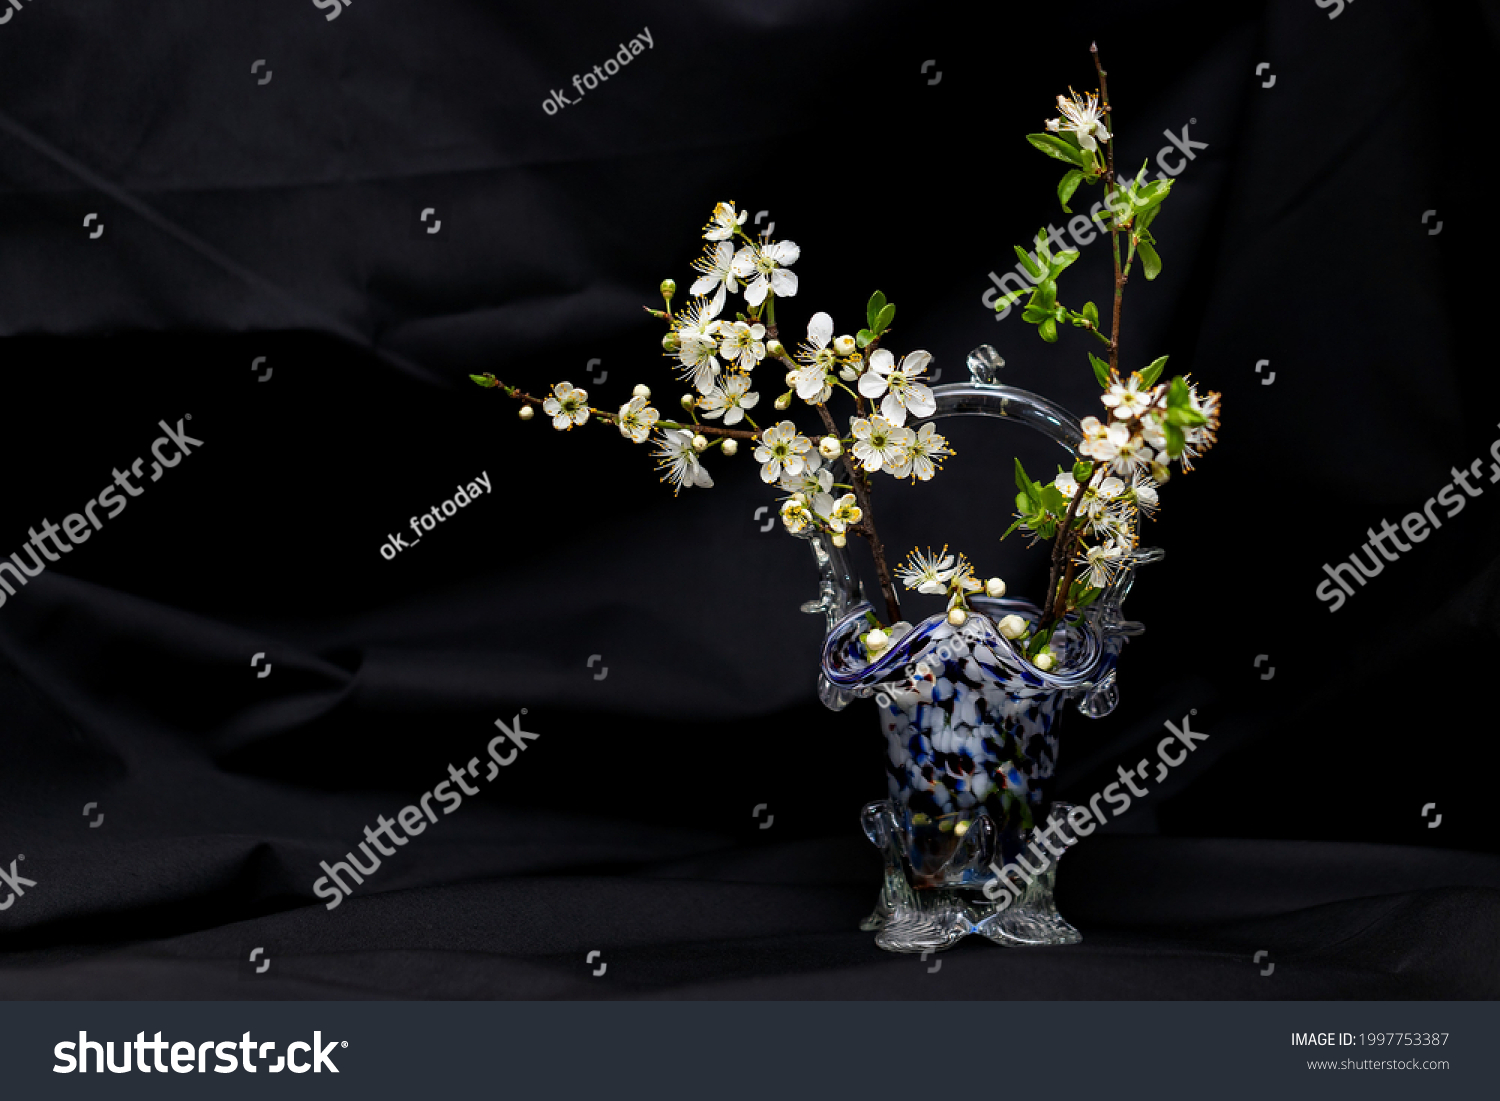 Composition of a sprig with small white flowers of a wild plum in a small vase of moire Czech glass on a black background